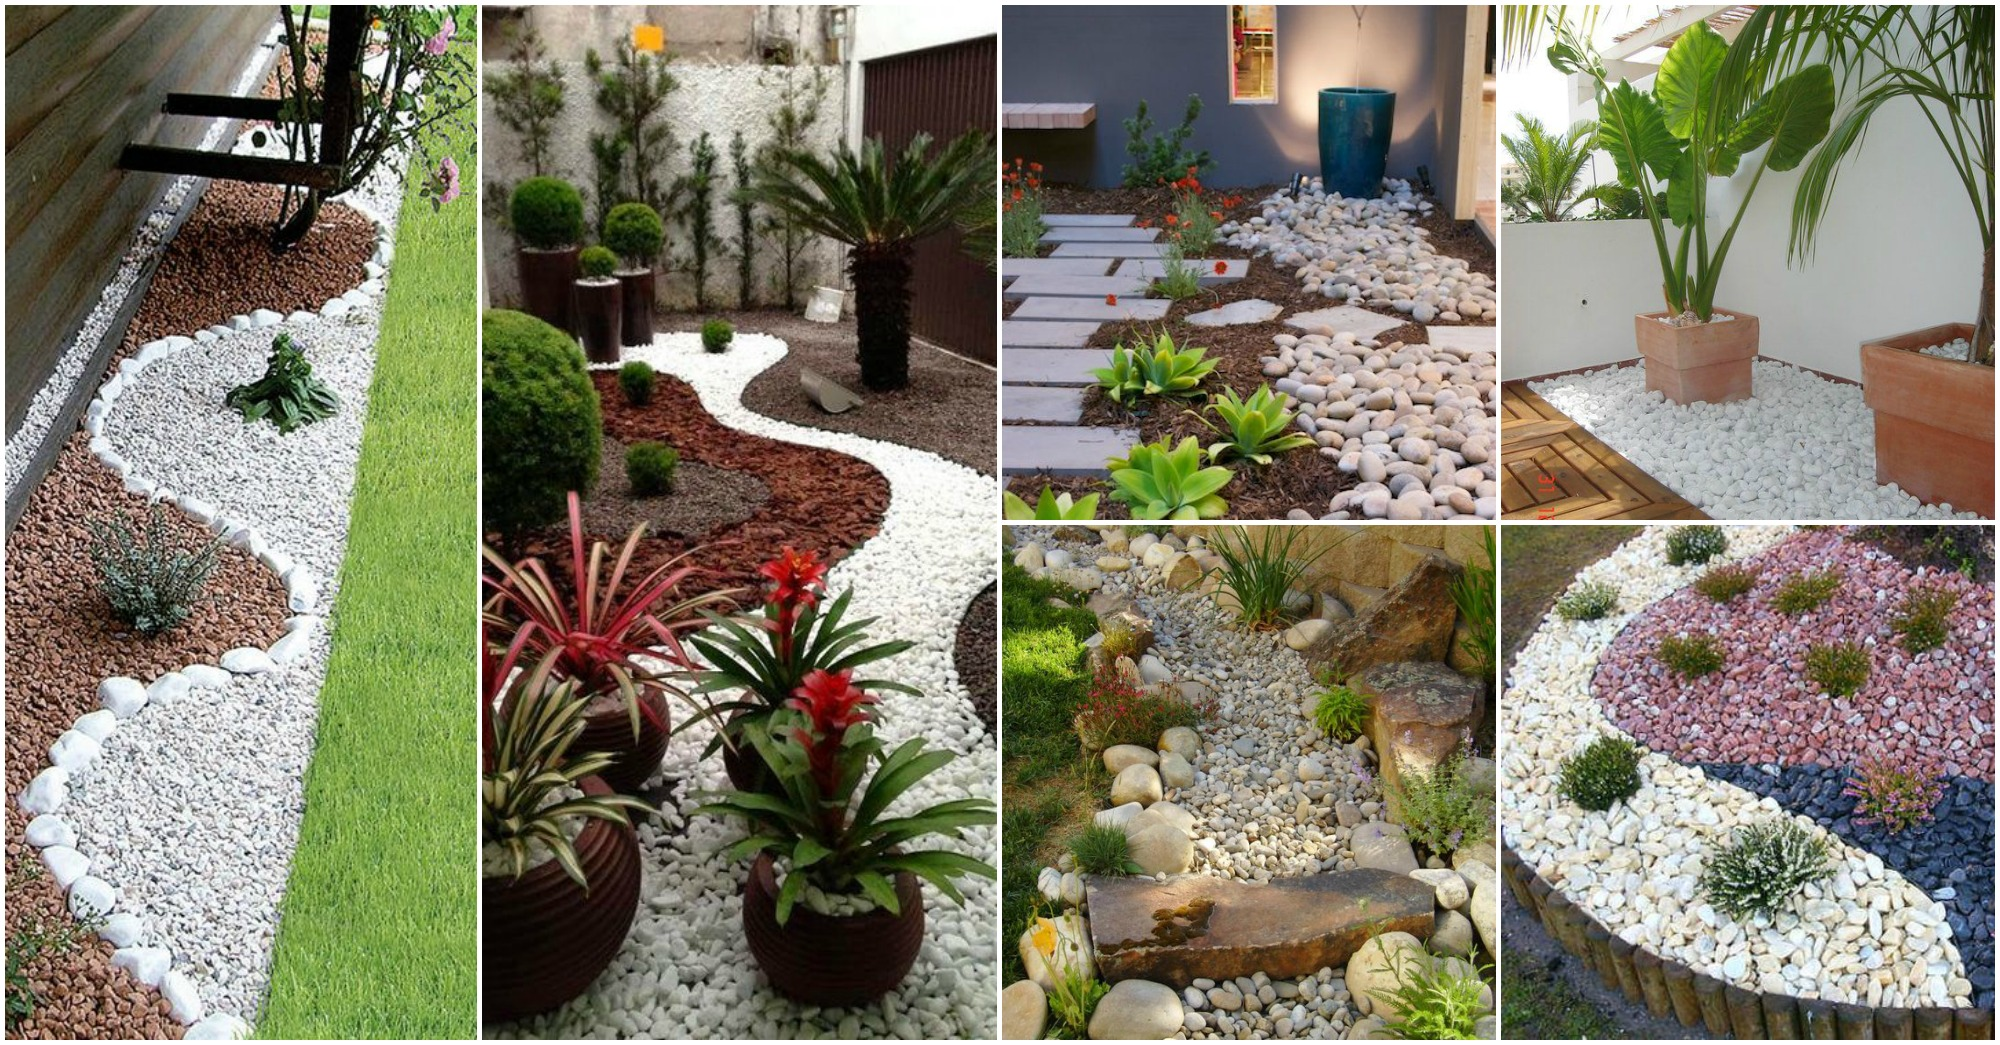 20 hermosas ideas para decorar tu jard n con piedras for Ideas para tu jardin en casa